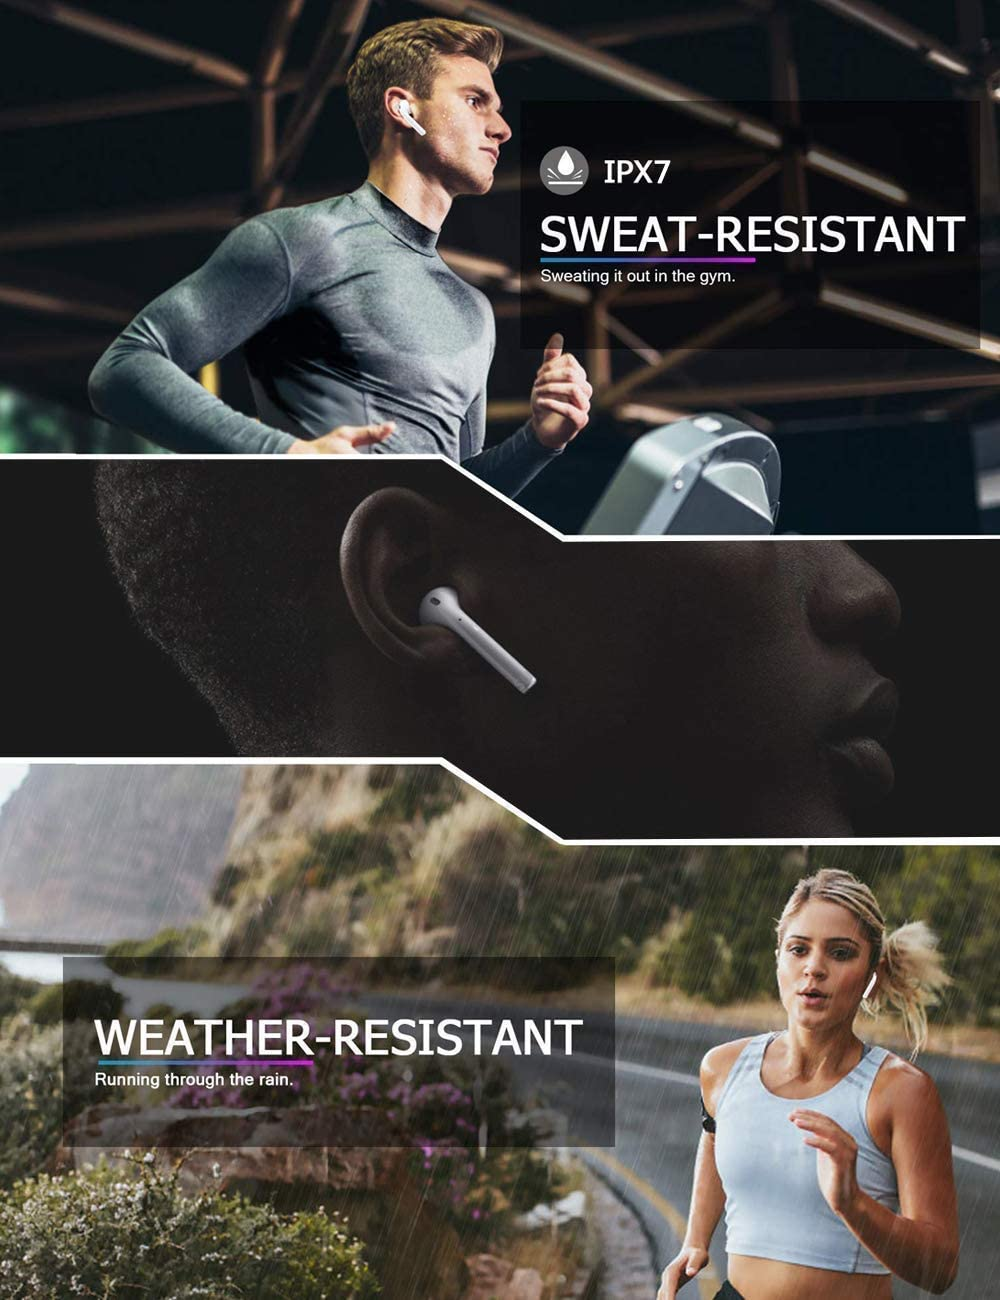 Bluetooth Headsets 5.0 Wireless Earbuds,IPX7 Waterproof,Noise Canceling Sports Headset,,Pop-ups Auto Pairing,Charging case in-Ear HD Mic Headphones,for Apple Airpods pro//Android//iPhone//Samsung